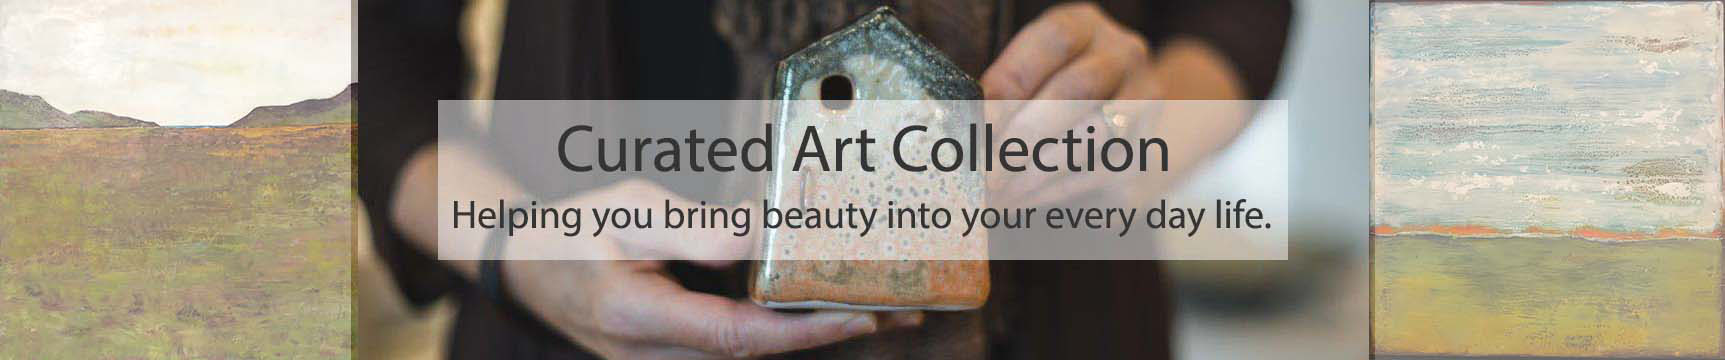 Curated Art Collection For Your Every Day Life